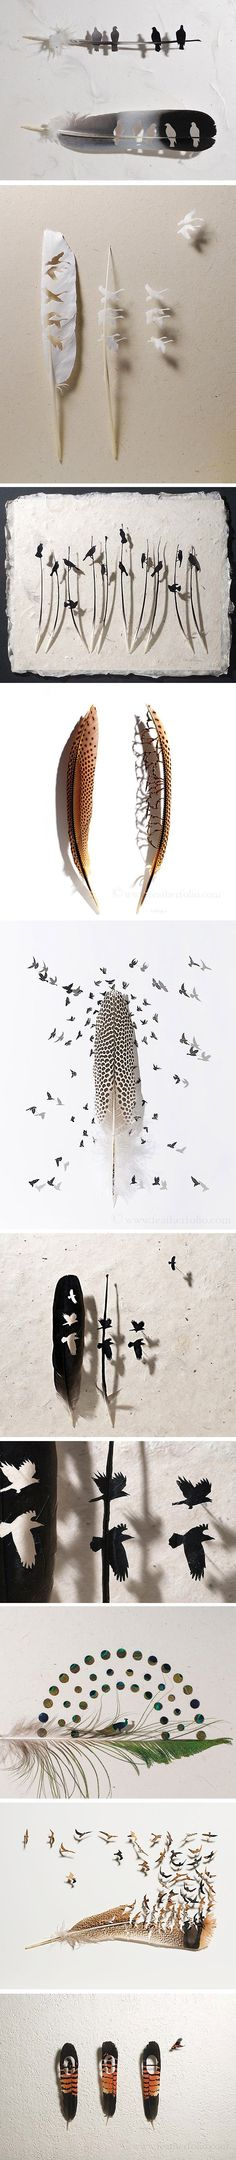 Feather Art par Chris Maynard - Journal du Design